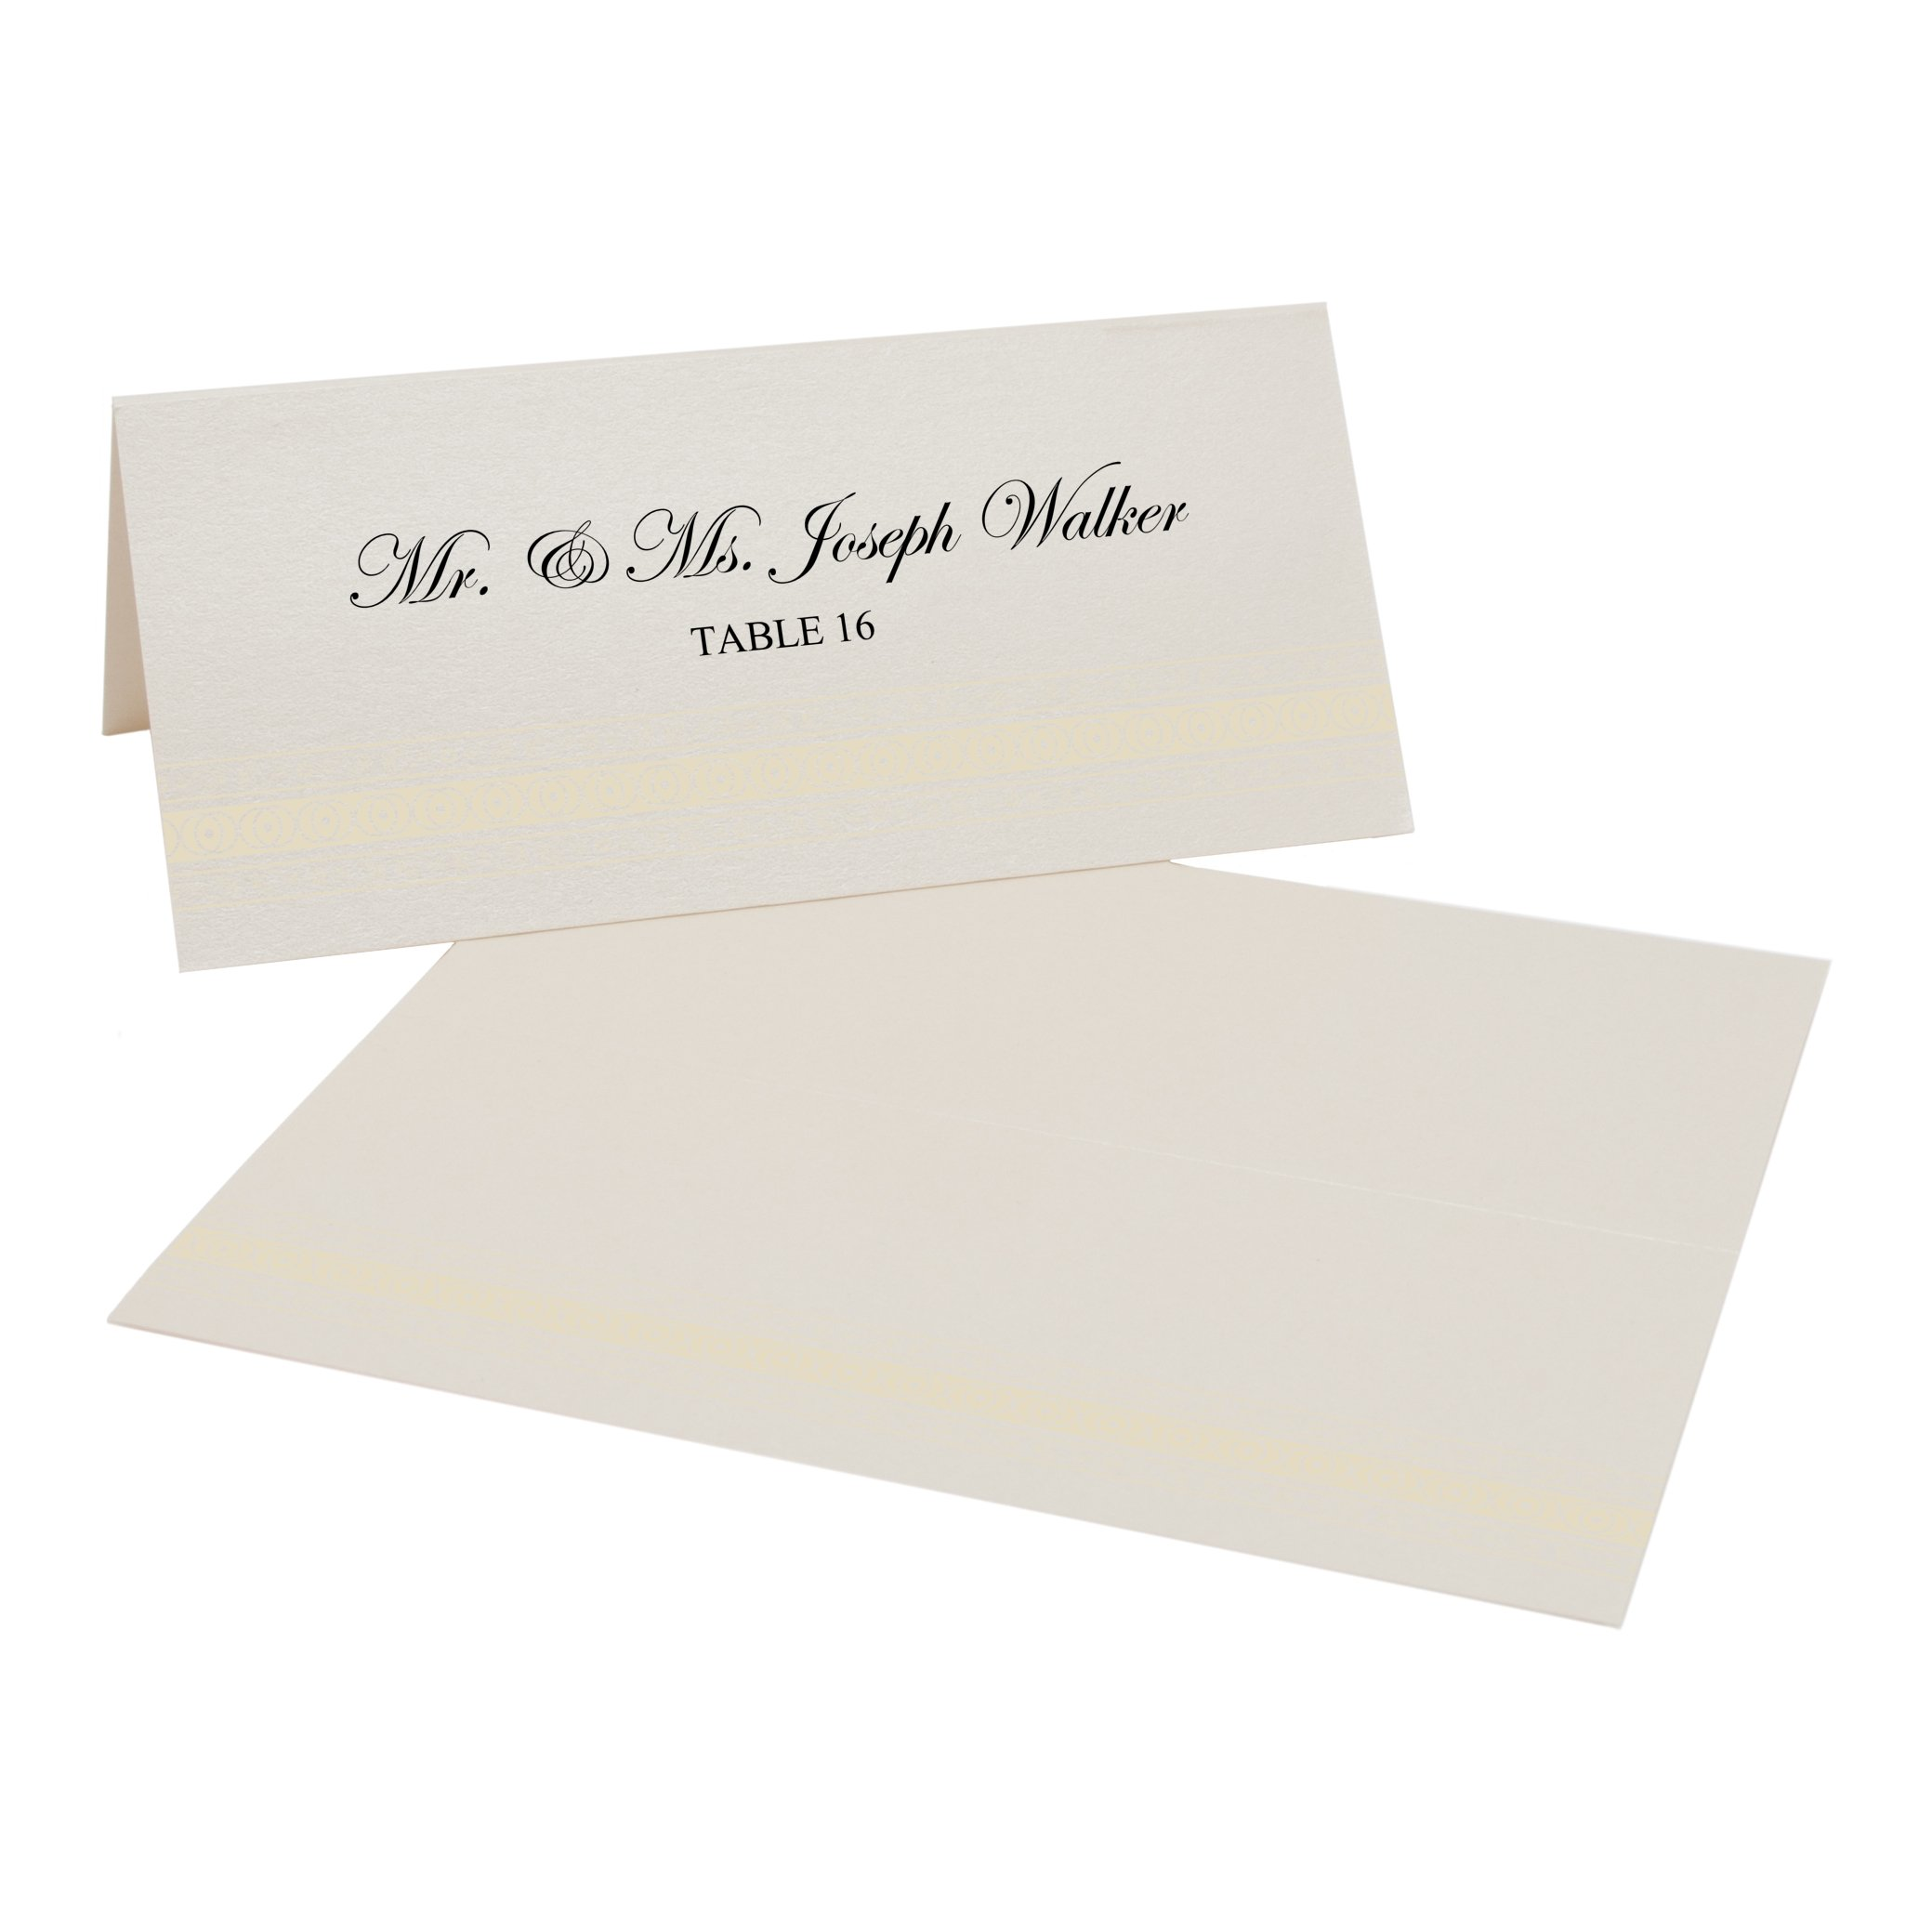 Mumbai Inspired Border Easy Print Place Cards, Champagne, Ivory, Set of 350 (88 Sheets)